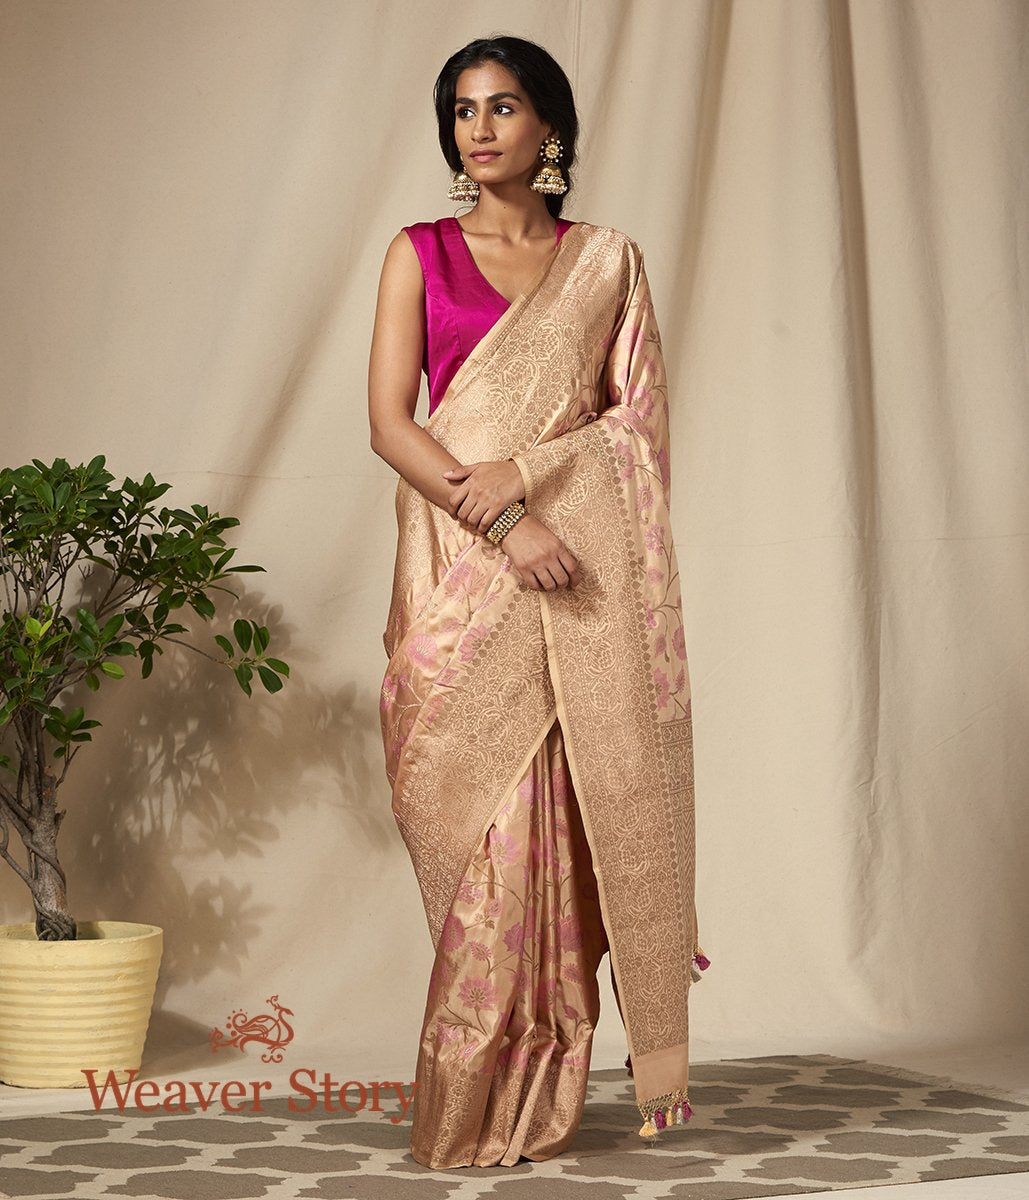 Handwoven Beige and Pink Banarasi Saree with Meenkari Jaal